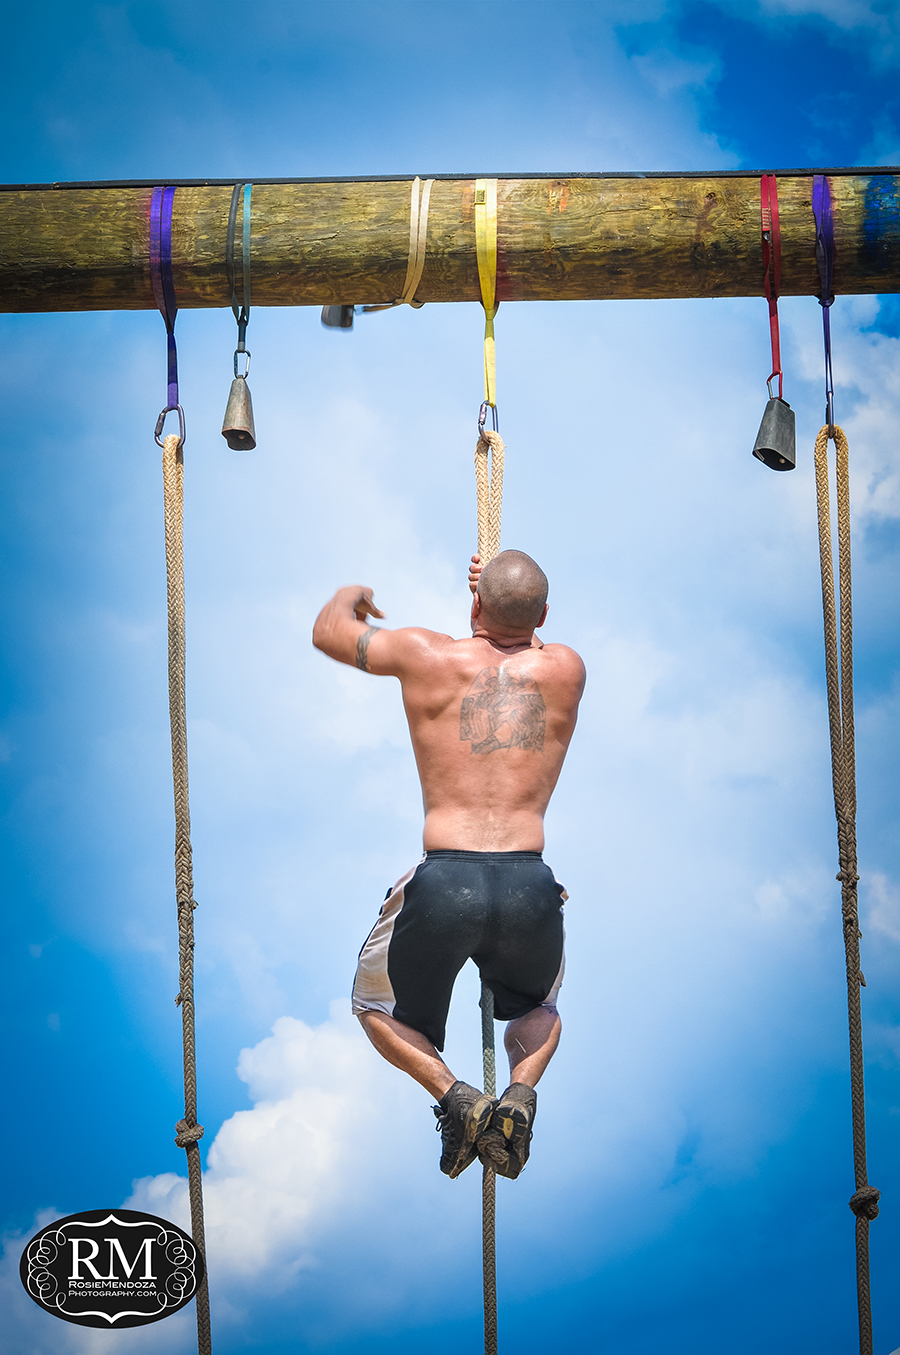 miami-spartan-race-rope-challenge-photo